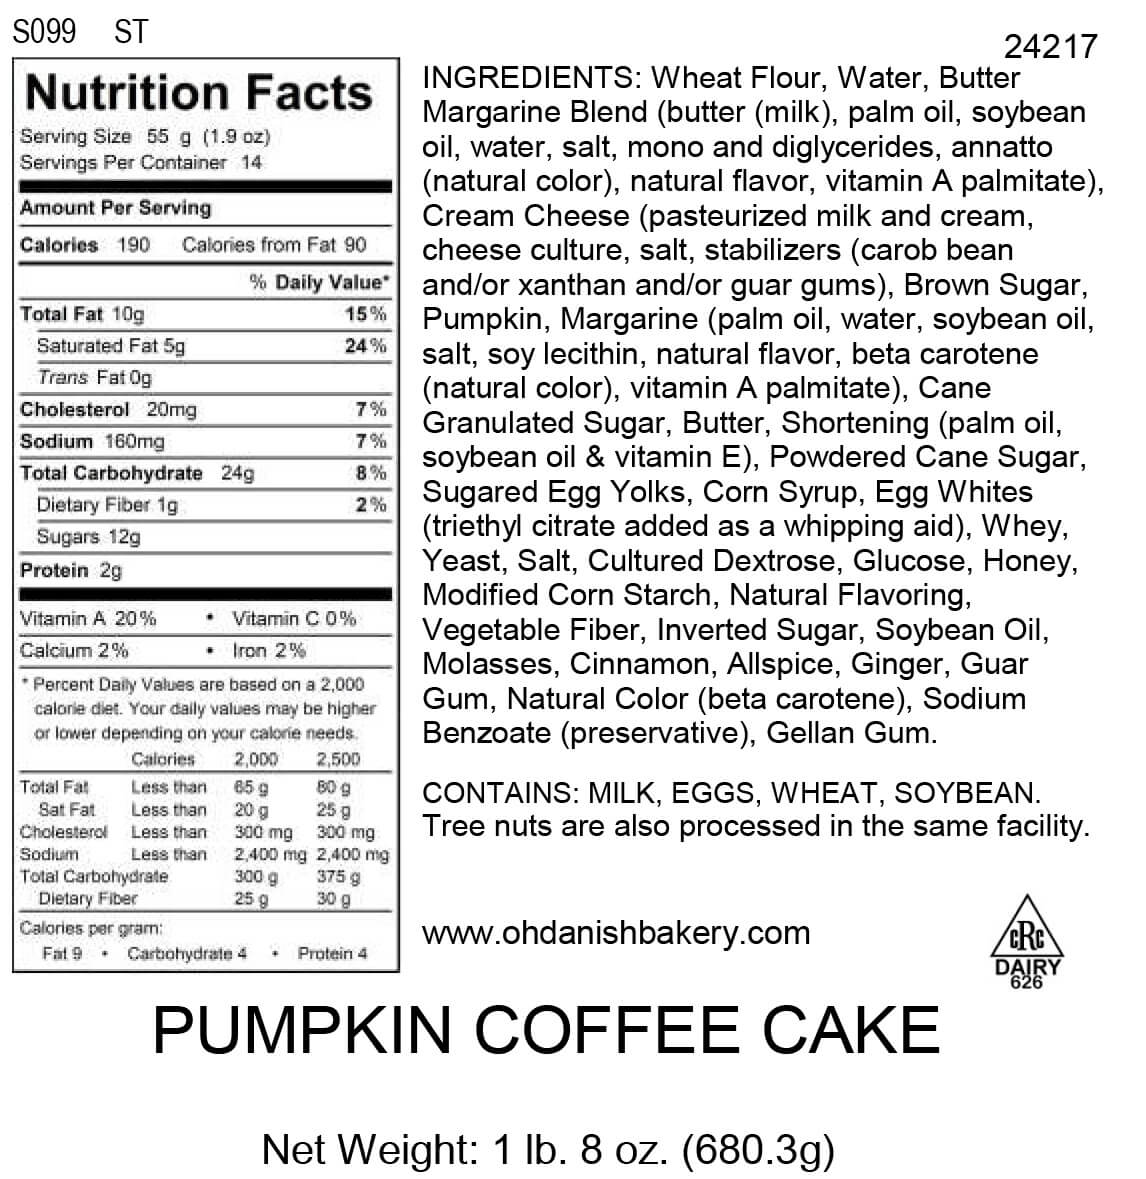 Nutritional Label for Pumpkin Coffee Cake